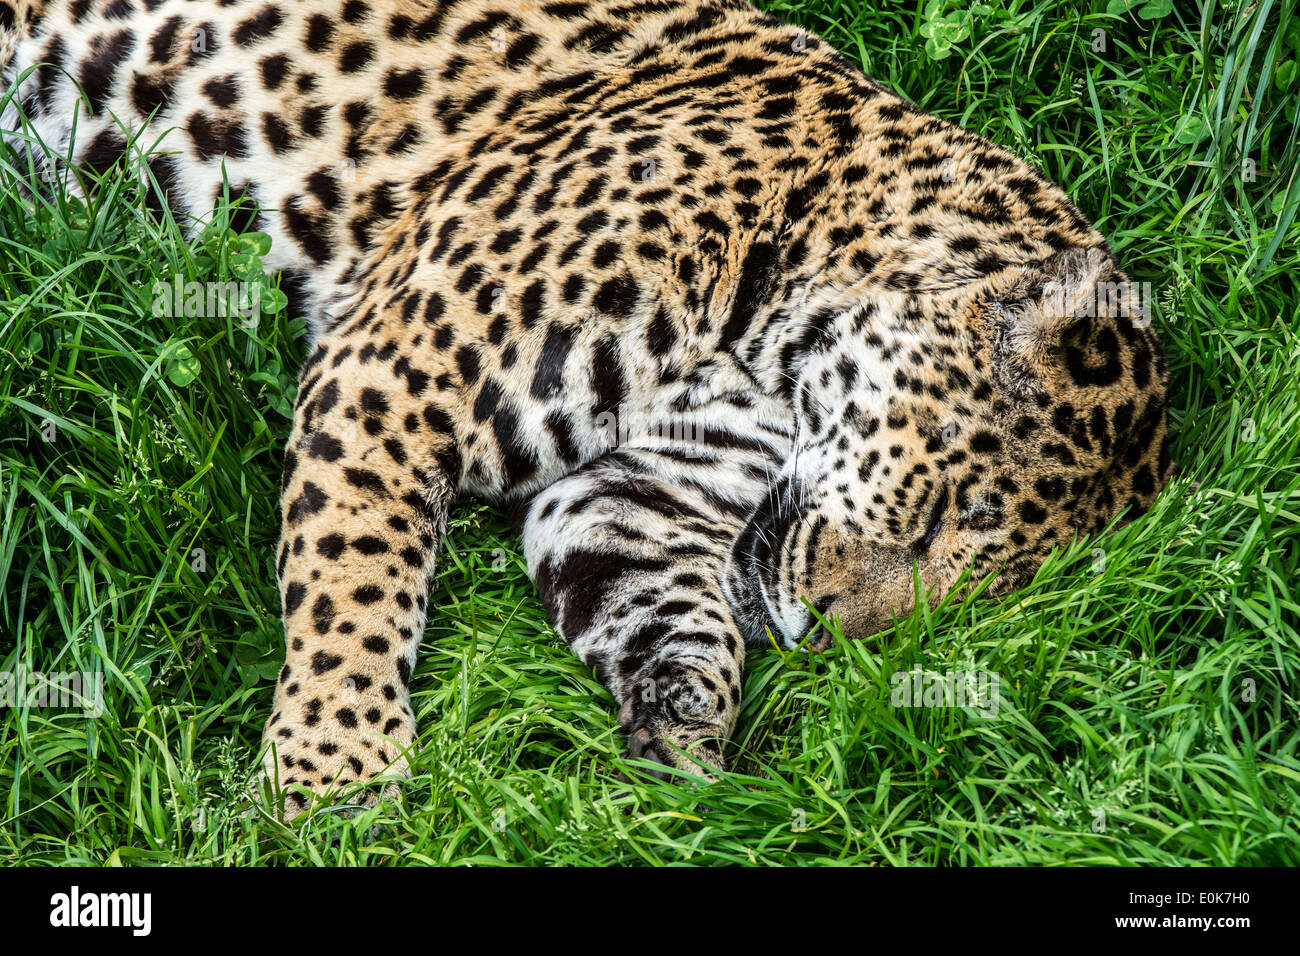 Panther / jaguar (Panthera onca) sleeping in the grass, native to Central and South America - Stock Image